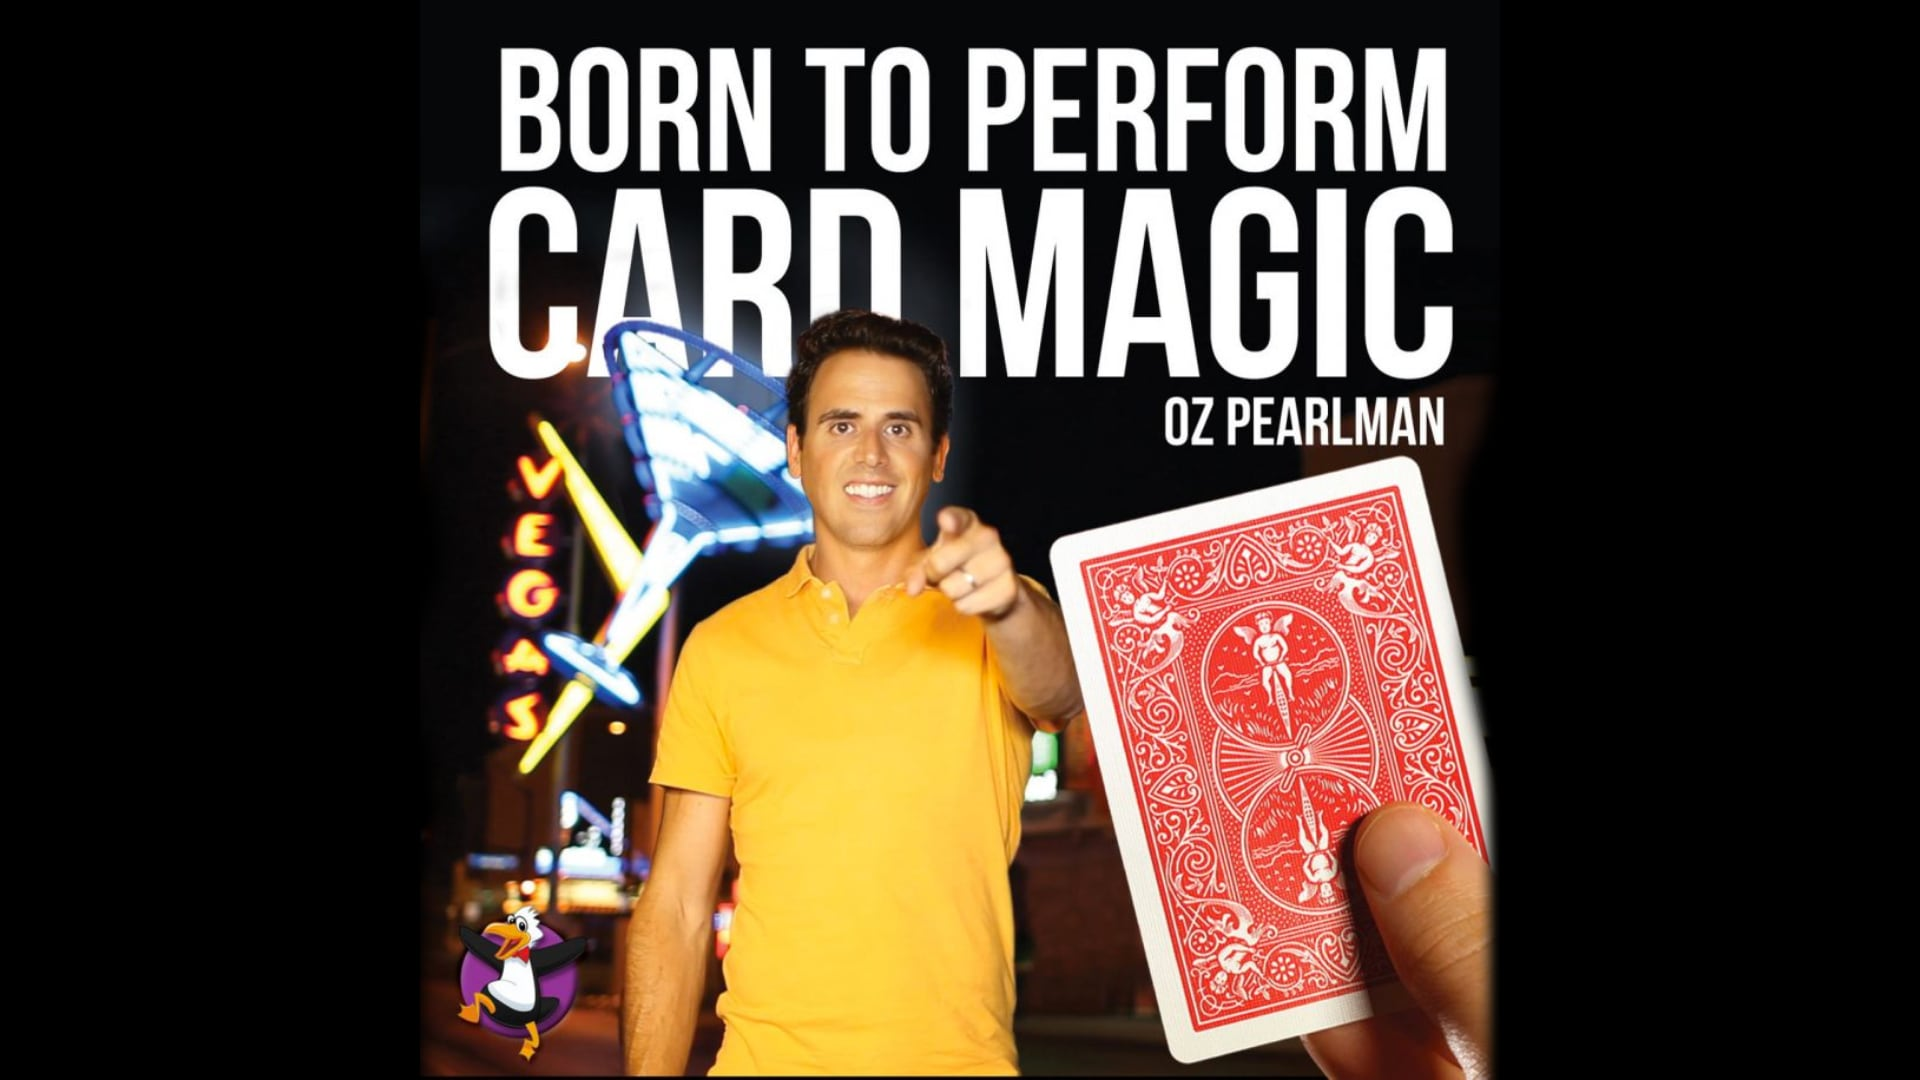 Born to Perform Card Magic